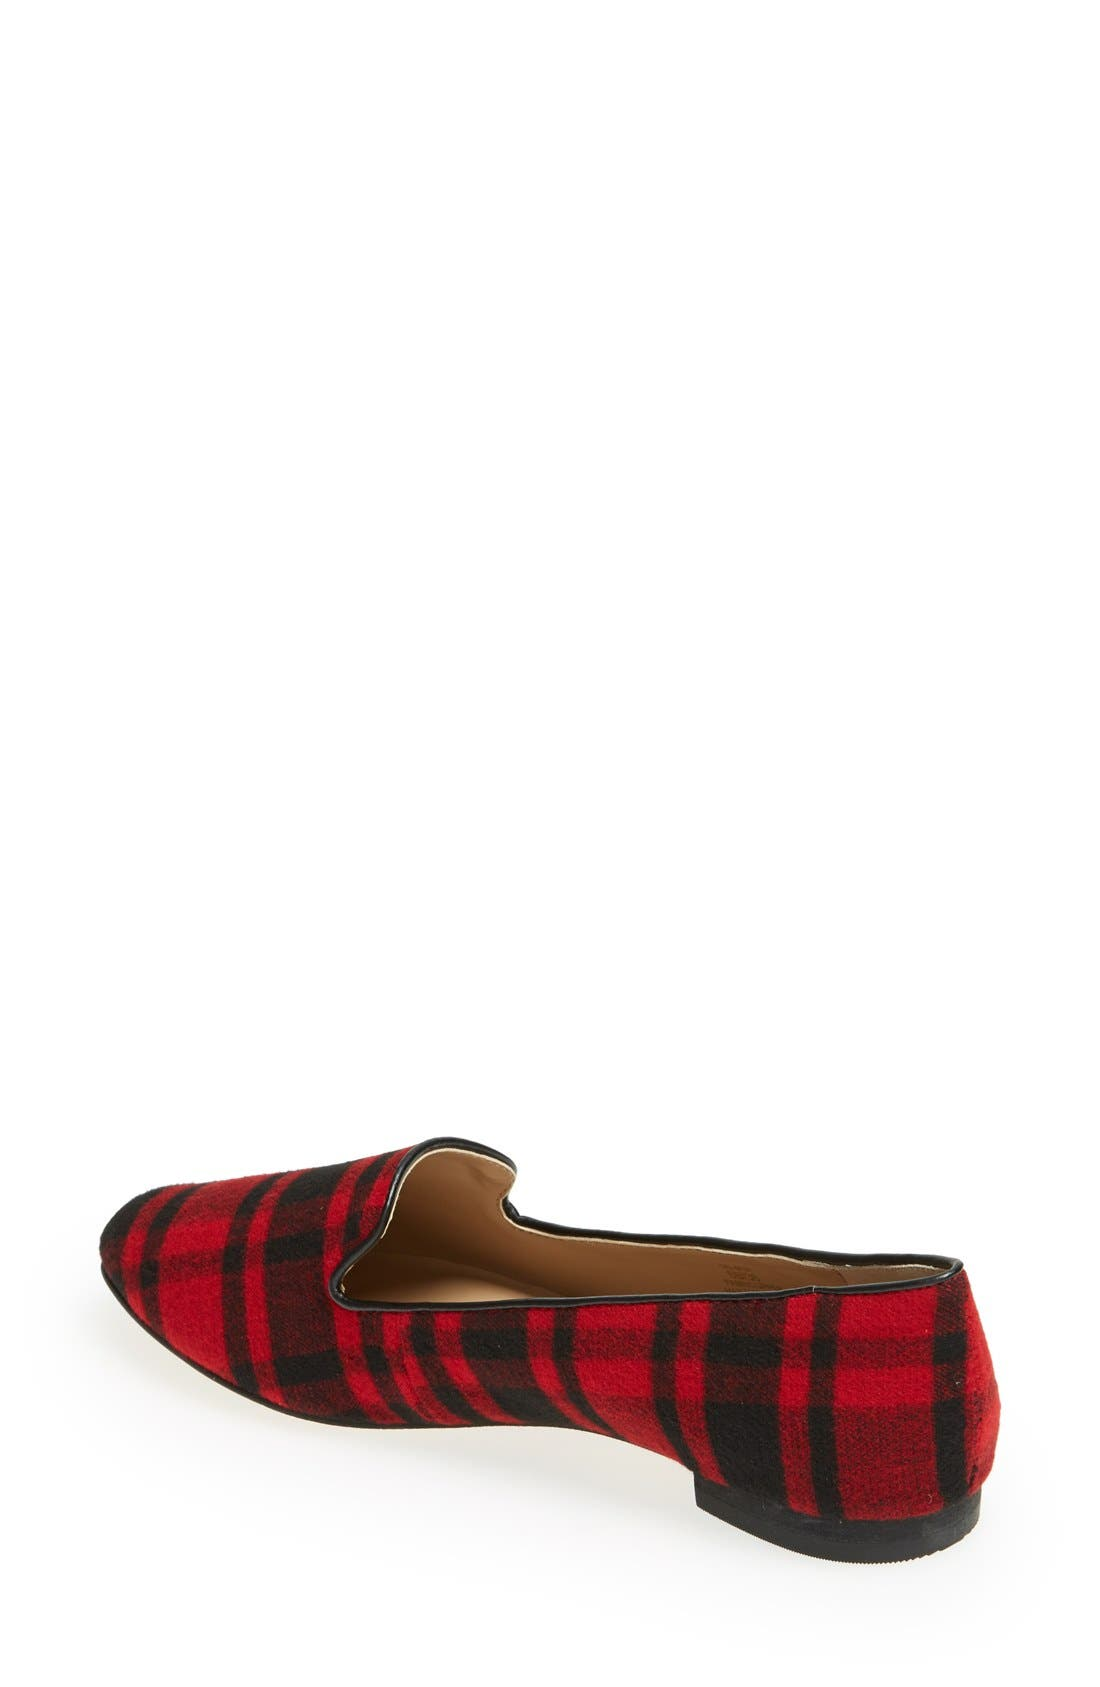 Alternate Image 2  - Sole Society 'Miia' Loafer (Women)